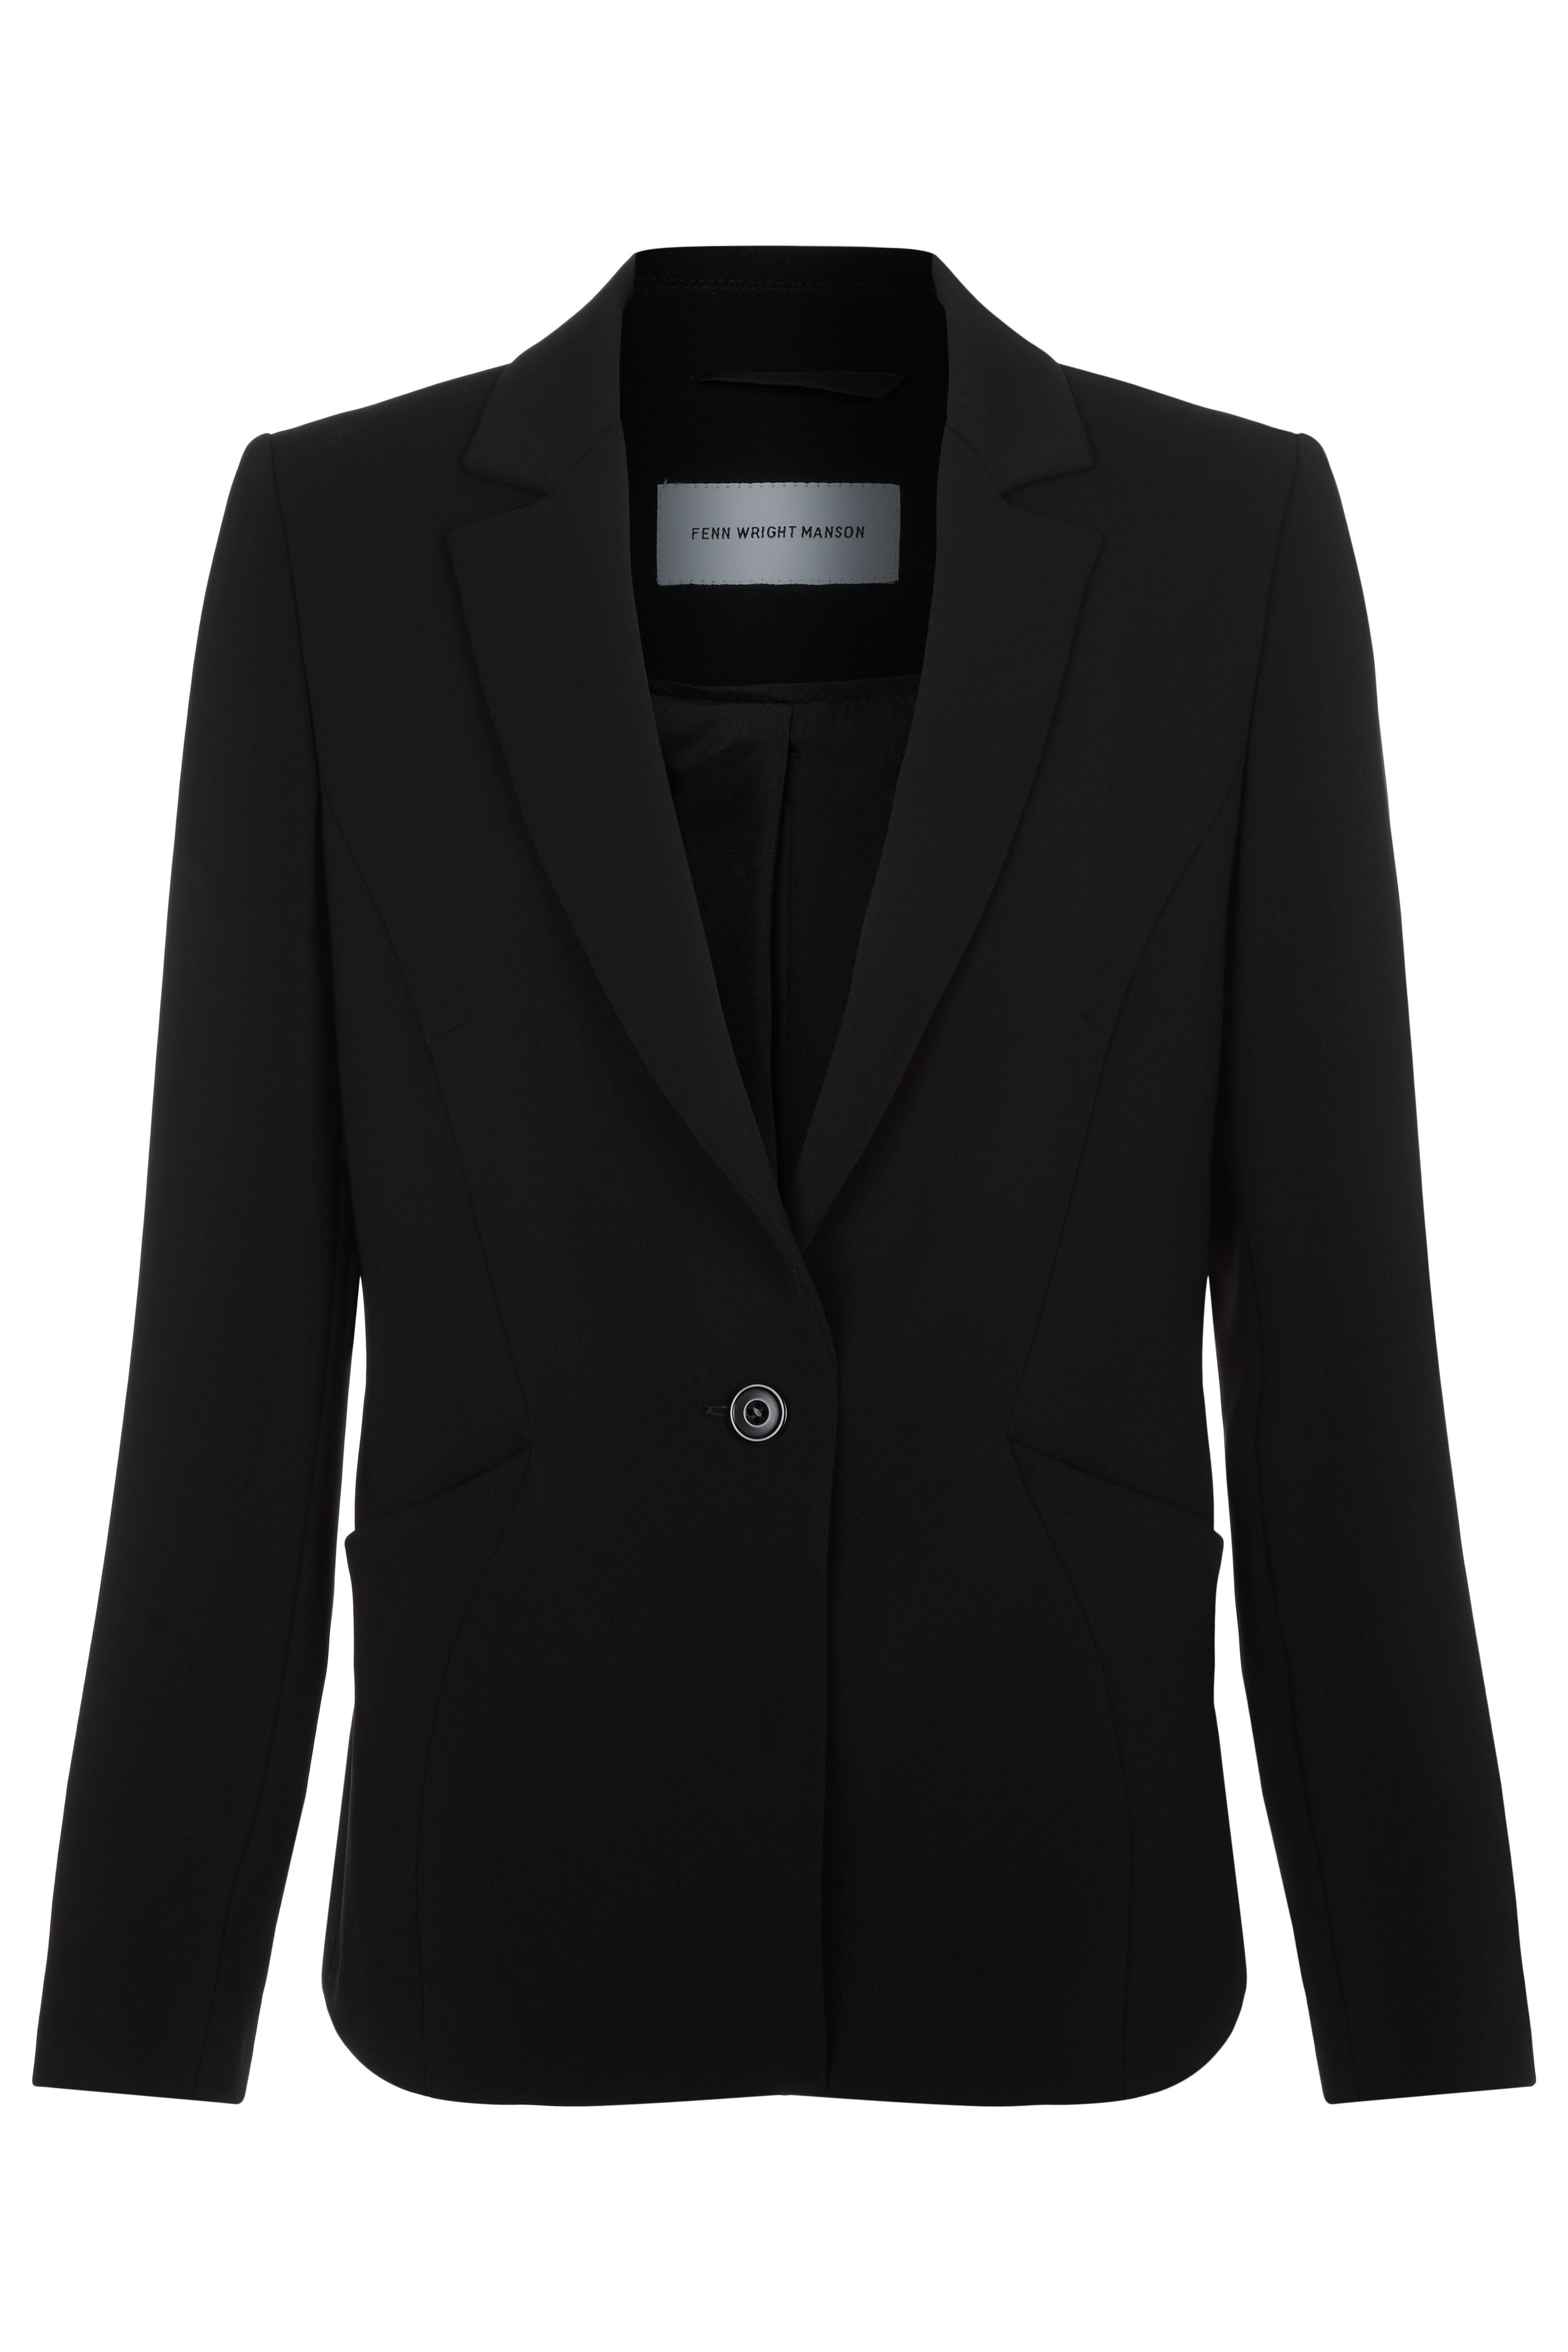 Fenn Wright Manson Harper Jacket, Black